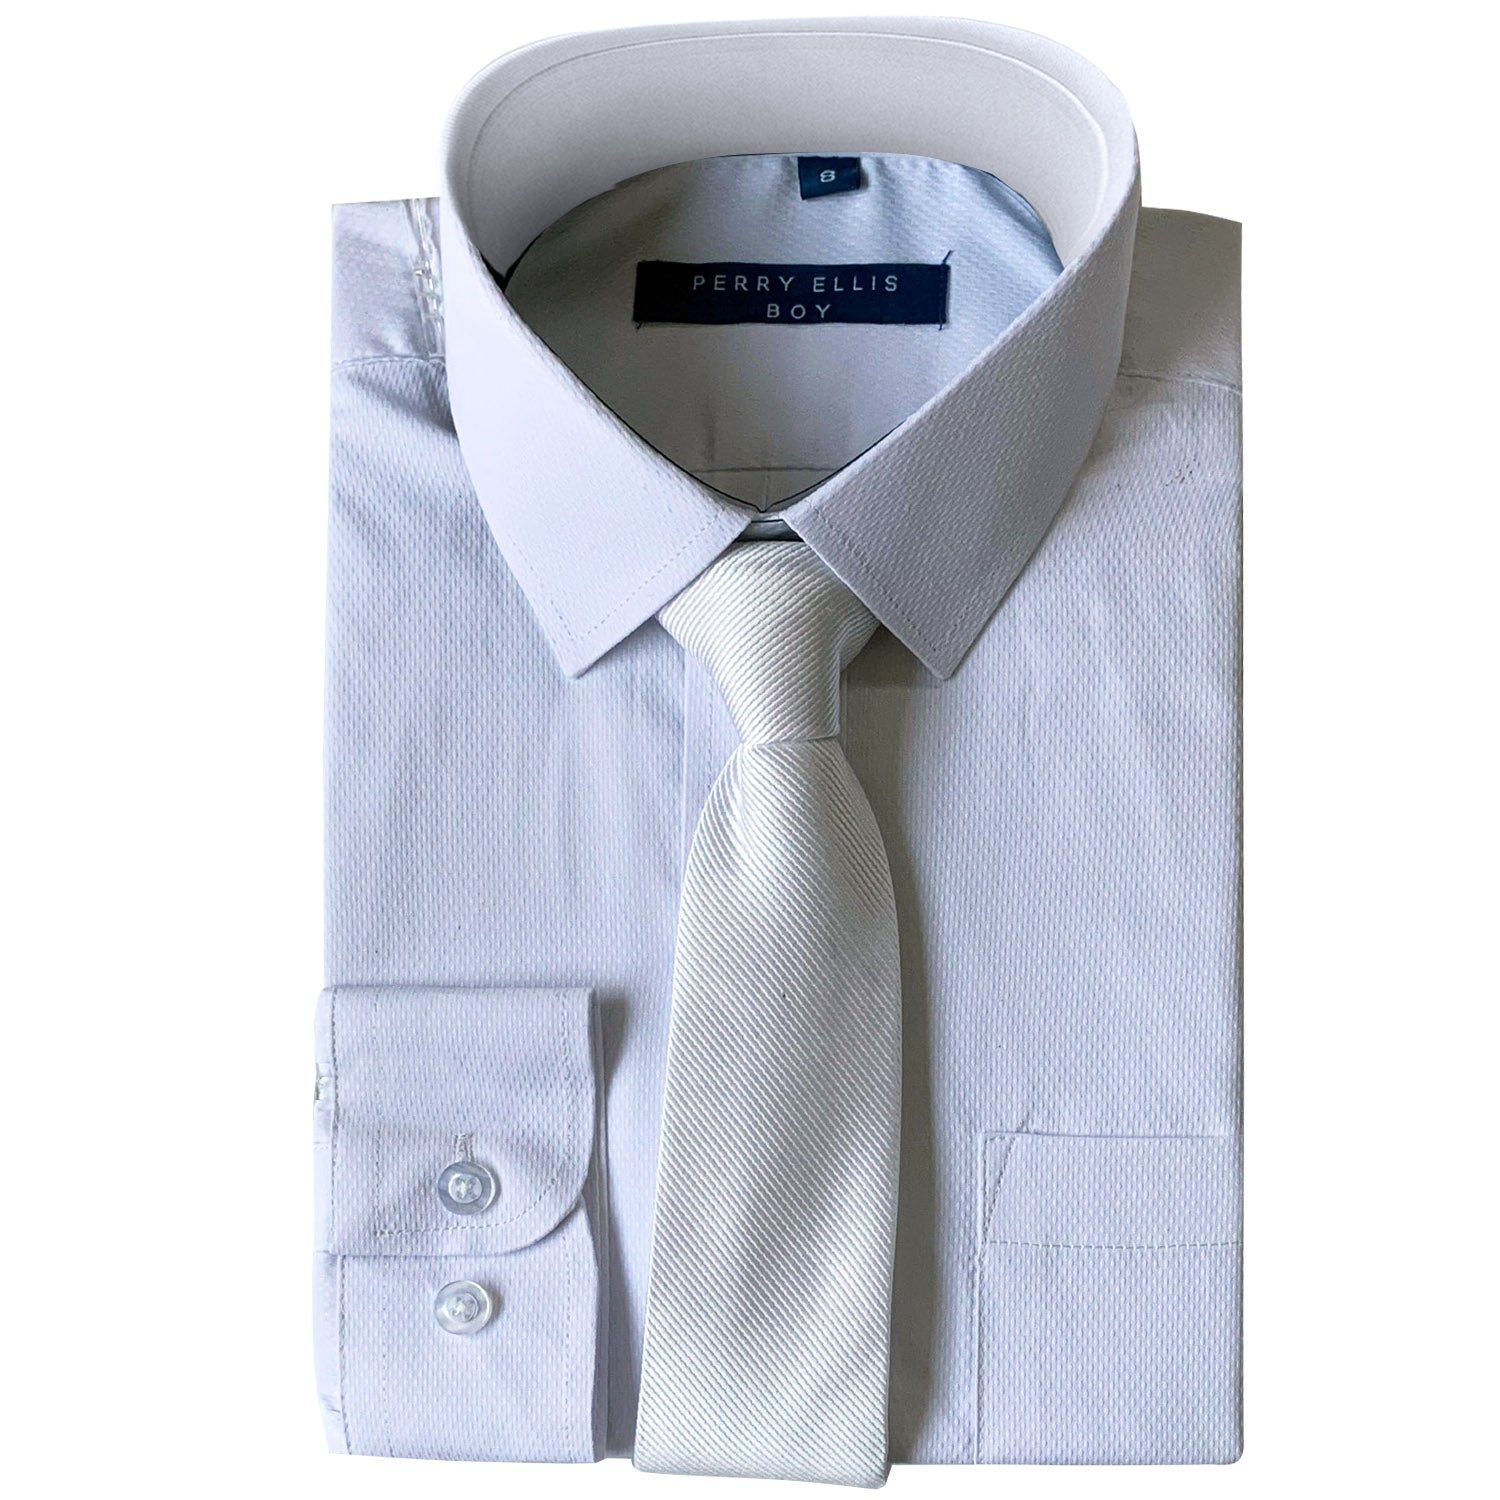 Perry Ellis Boys Dress Shirts w White Tie Solid Shirts w Colored Tie